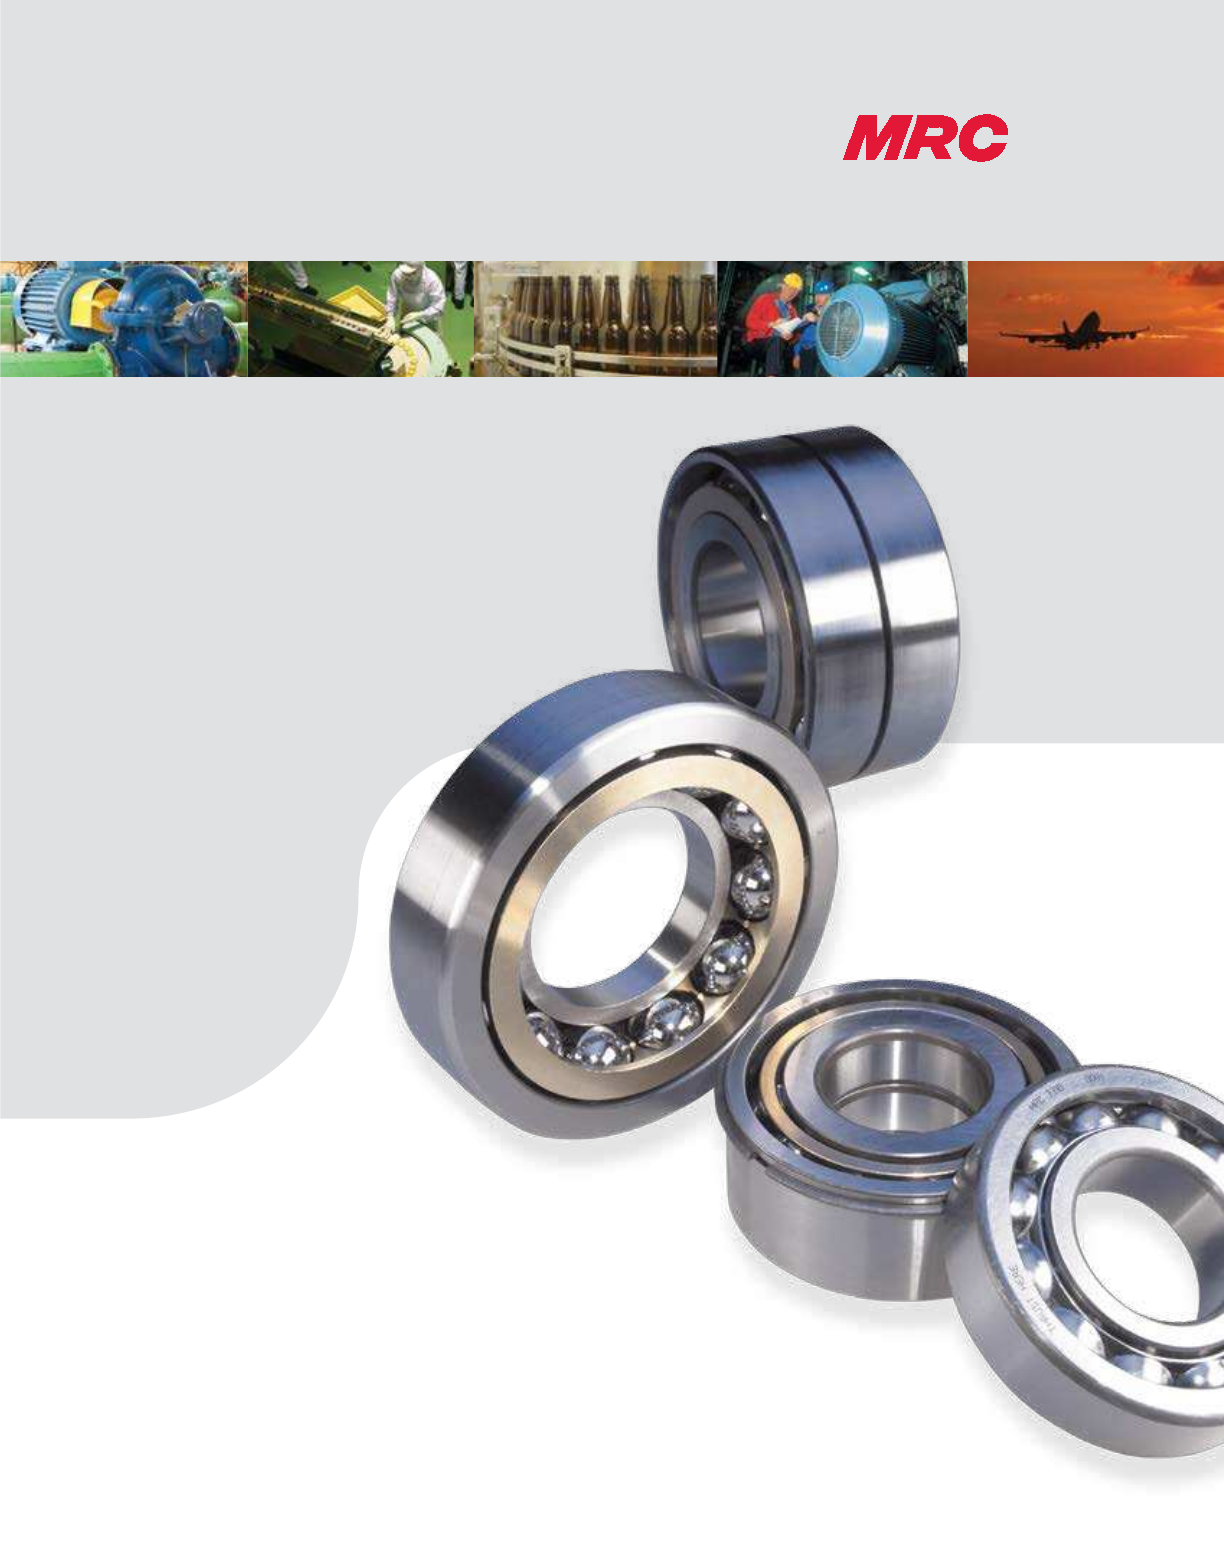 87013 HOOVER BALL BEARING